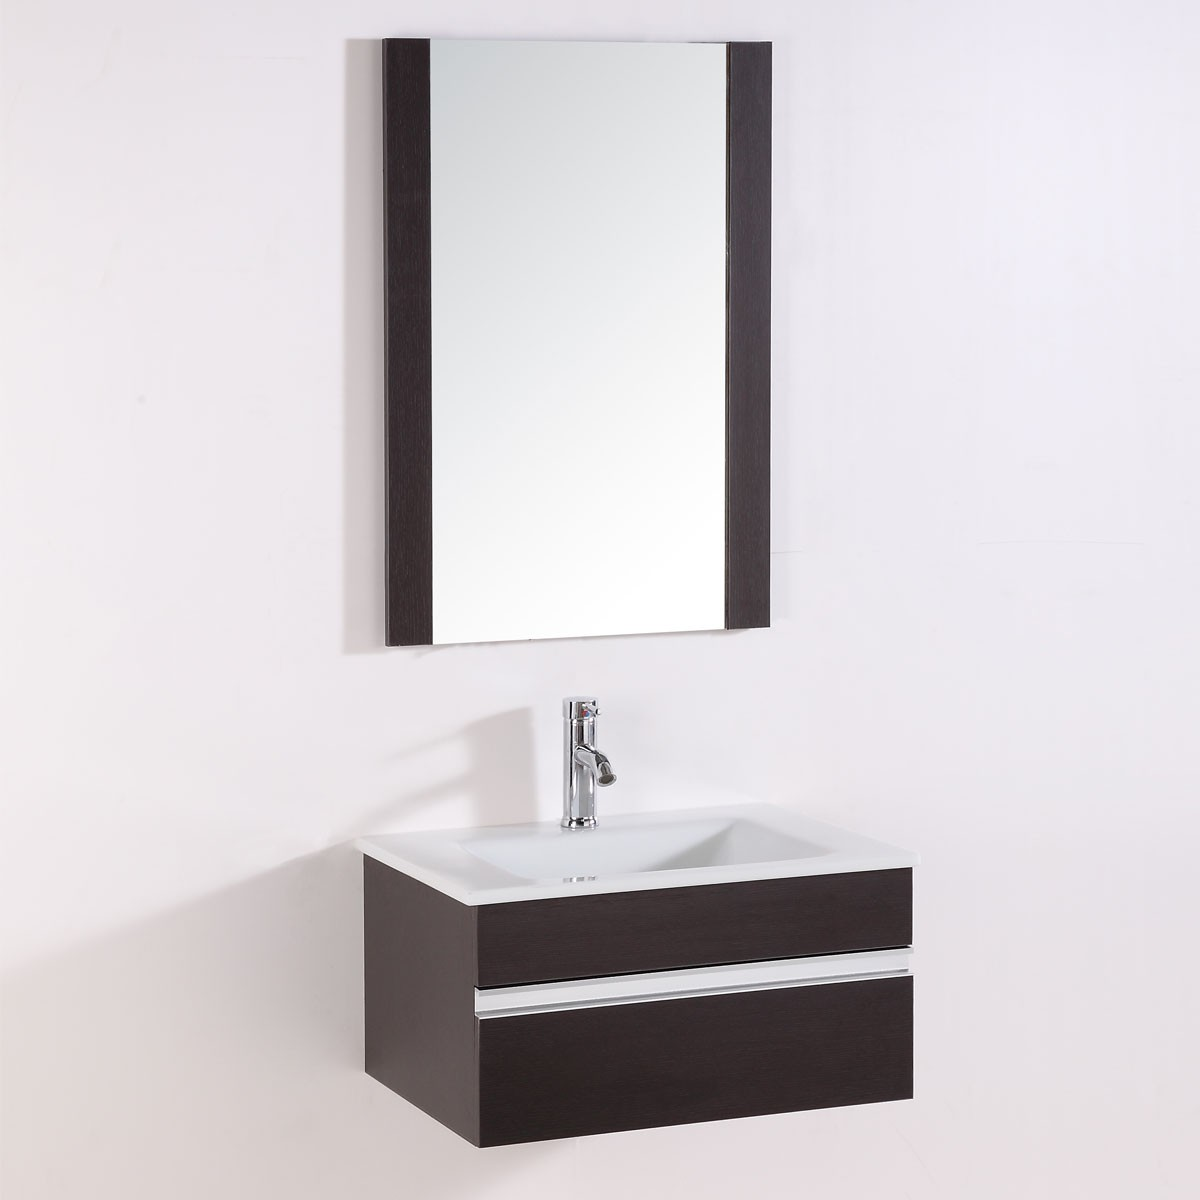 24 In. Wall-Mount Bathroom Vanity Set with Single Sink and Mirror (DK-TH9021A-SET)